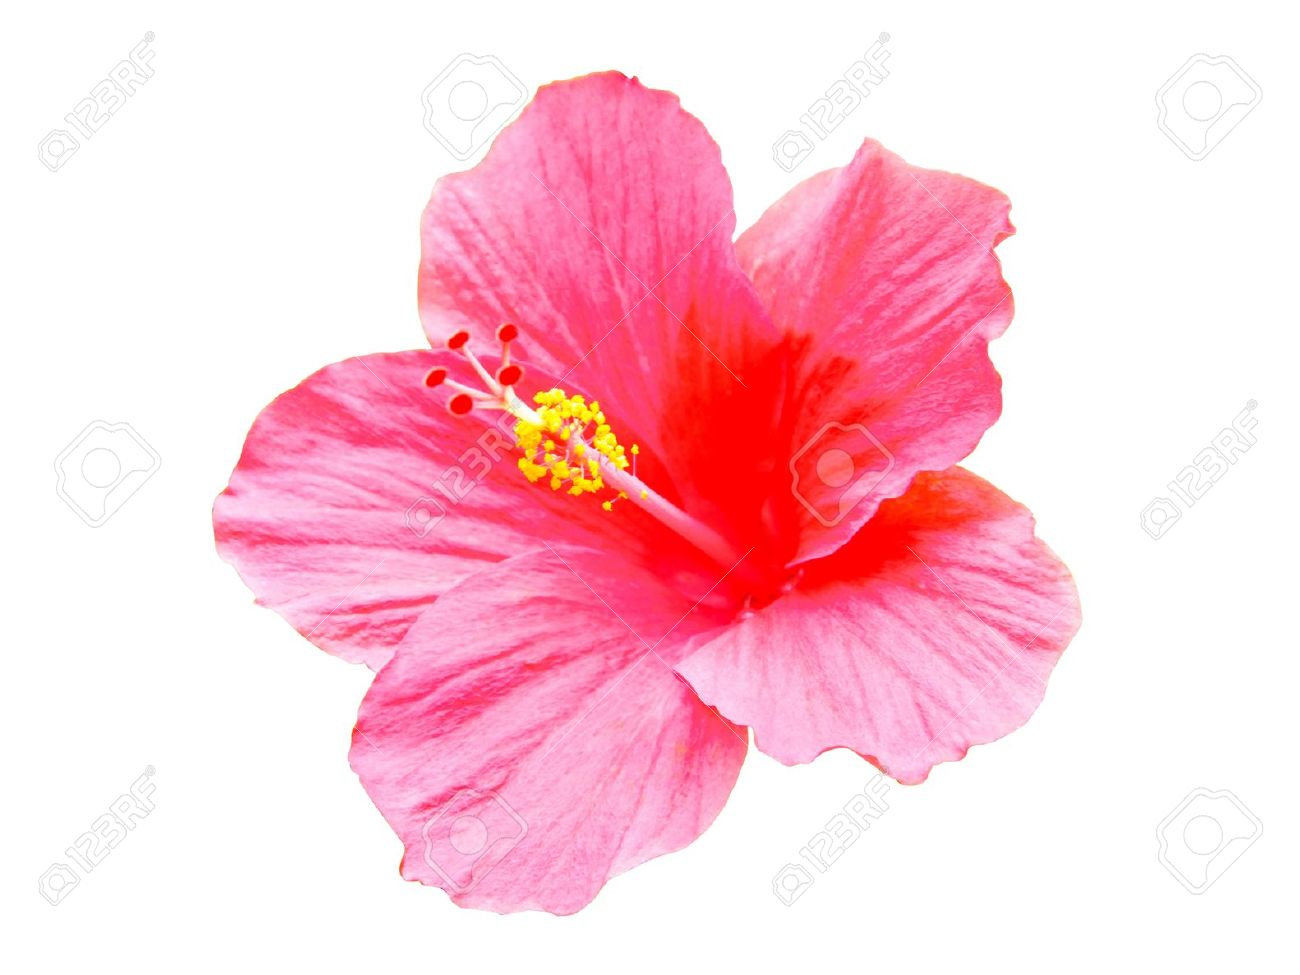 Pink hibiscus flowers isolated on white background stock photo pink hibiscus flowers isolated on white background stock photo 20831531 izmirmasajfo Gallery